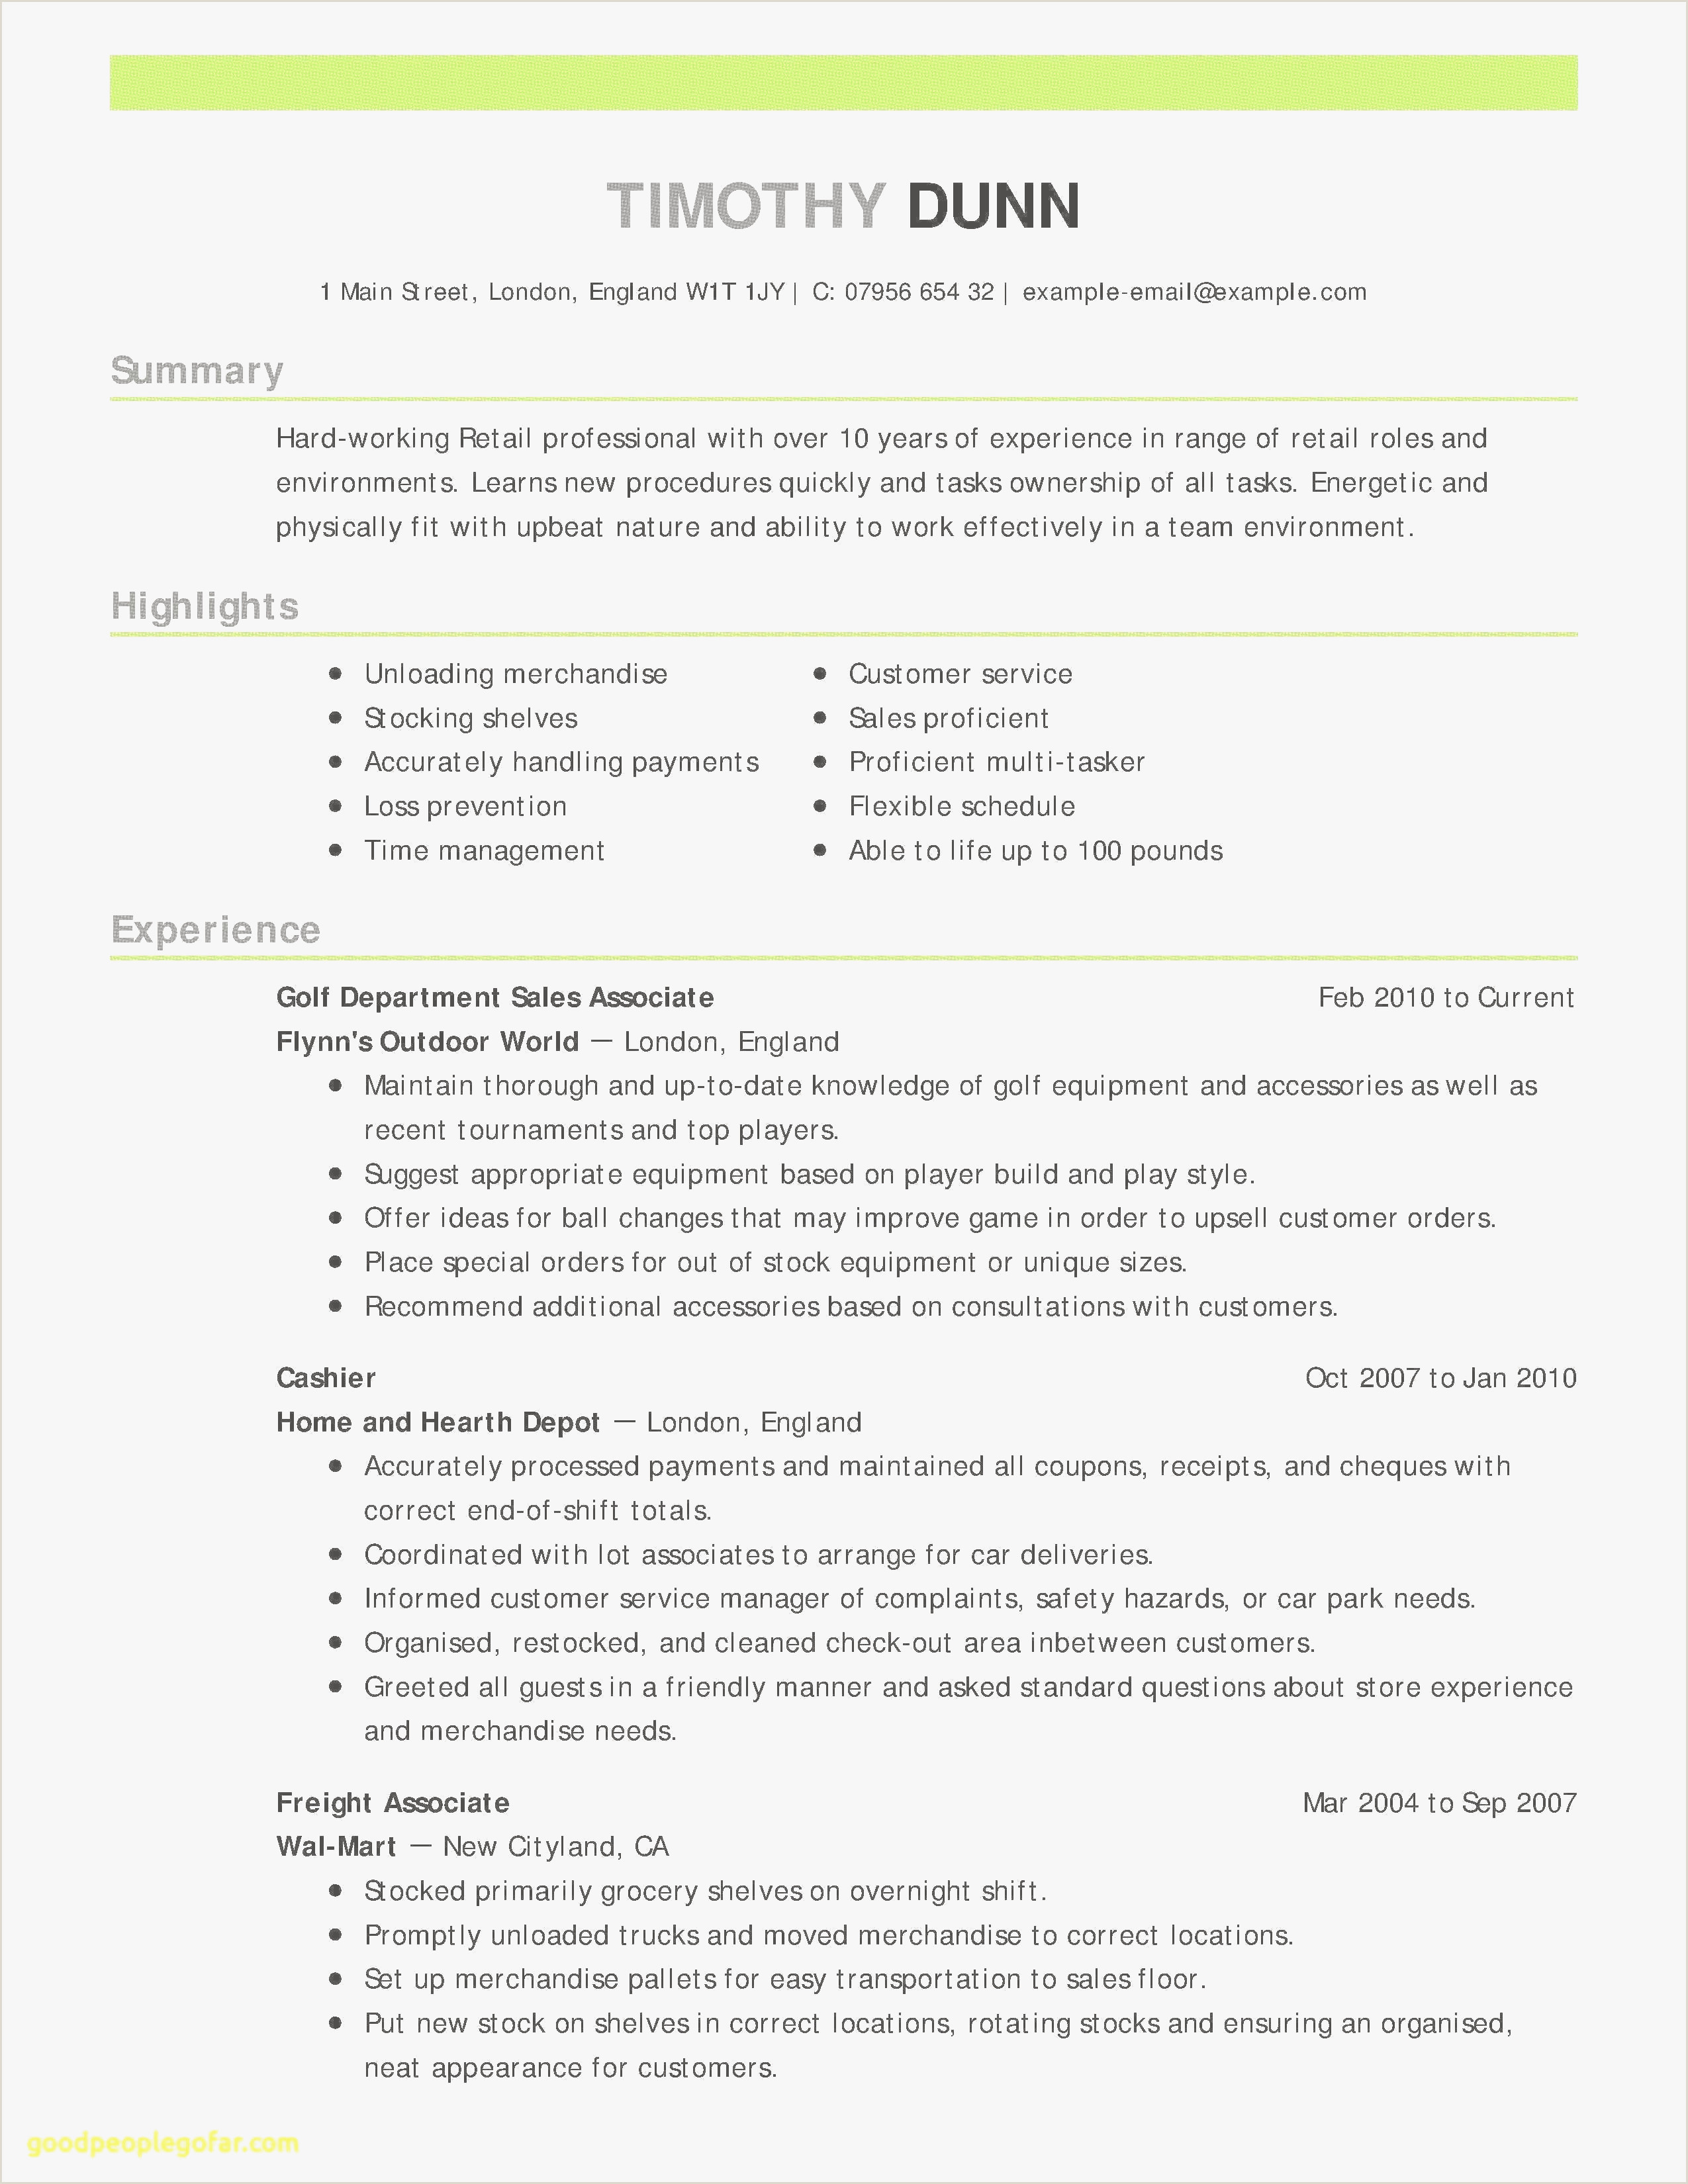 Professional Cv format Images 25 Professional Resume Text format